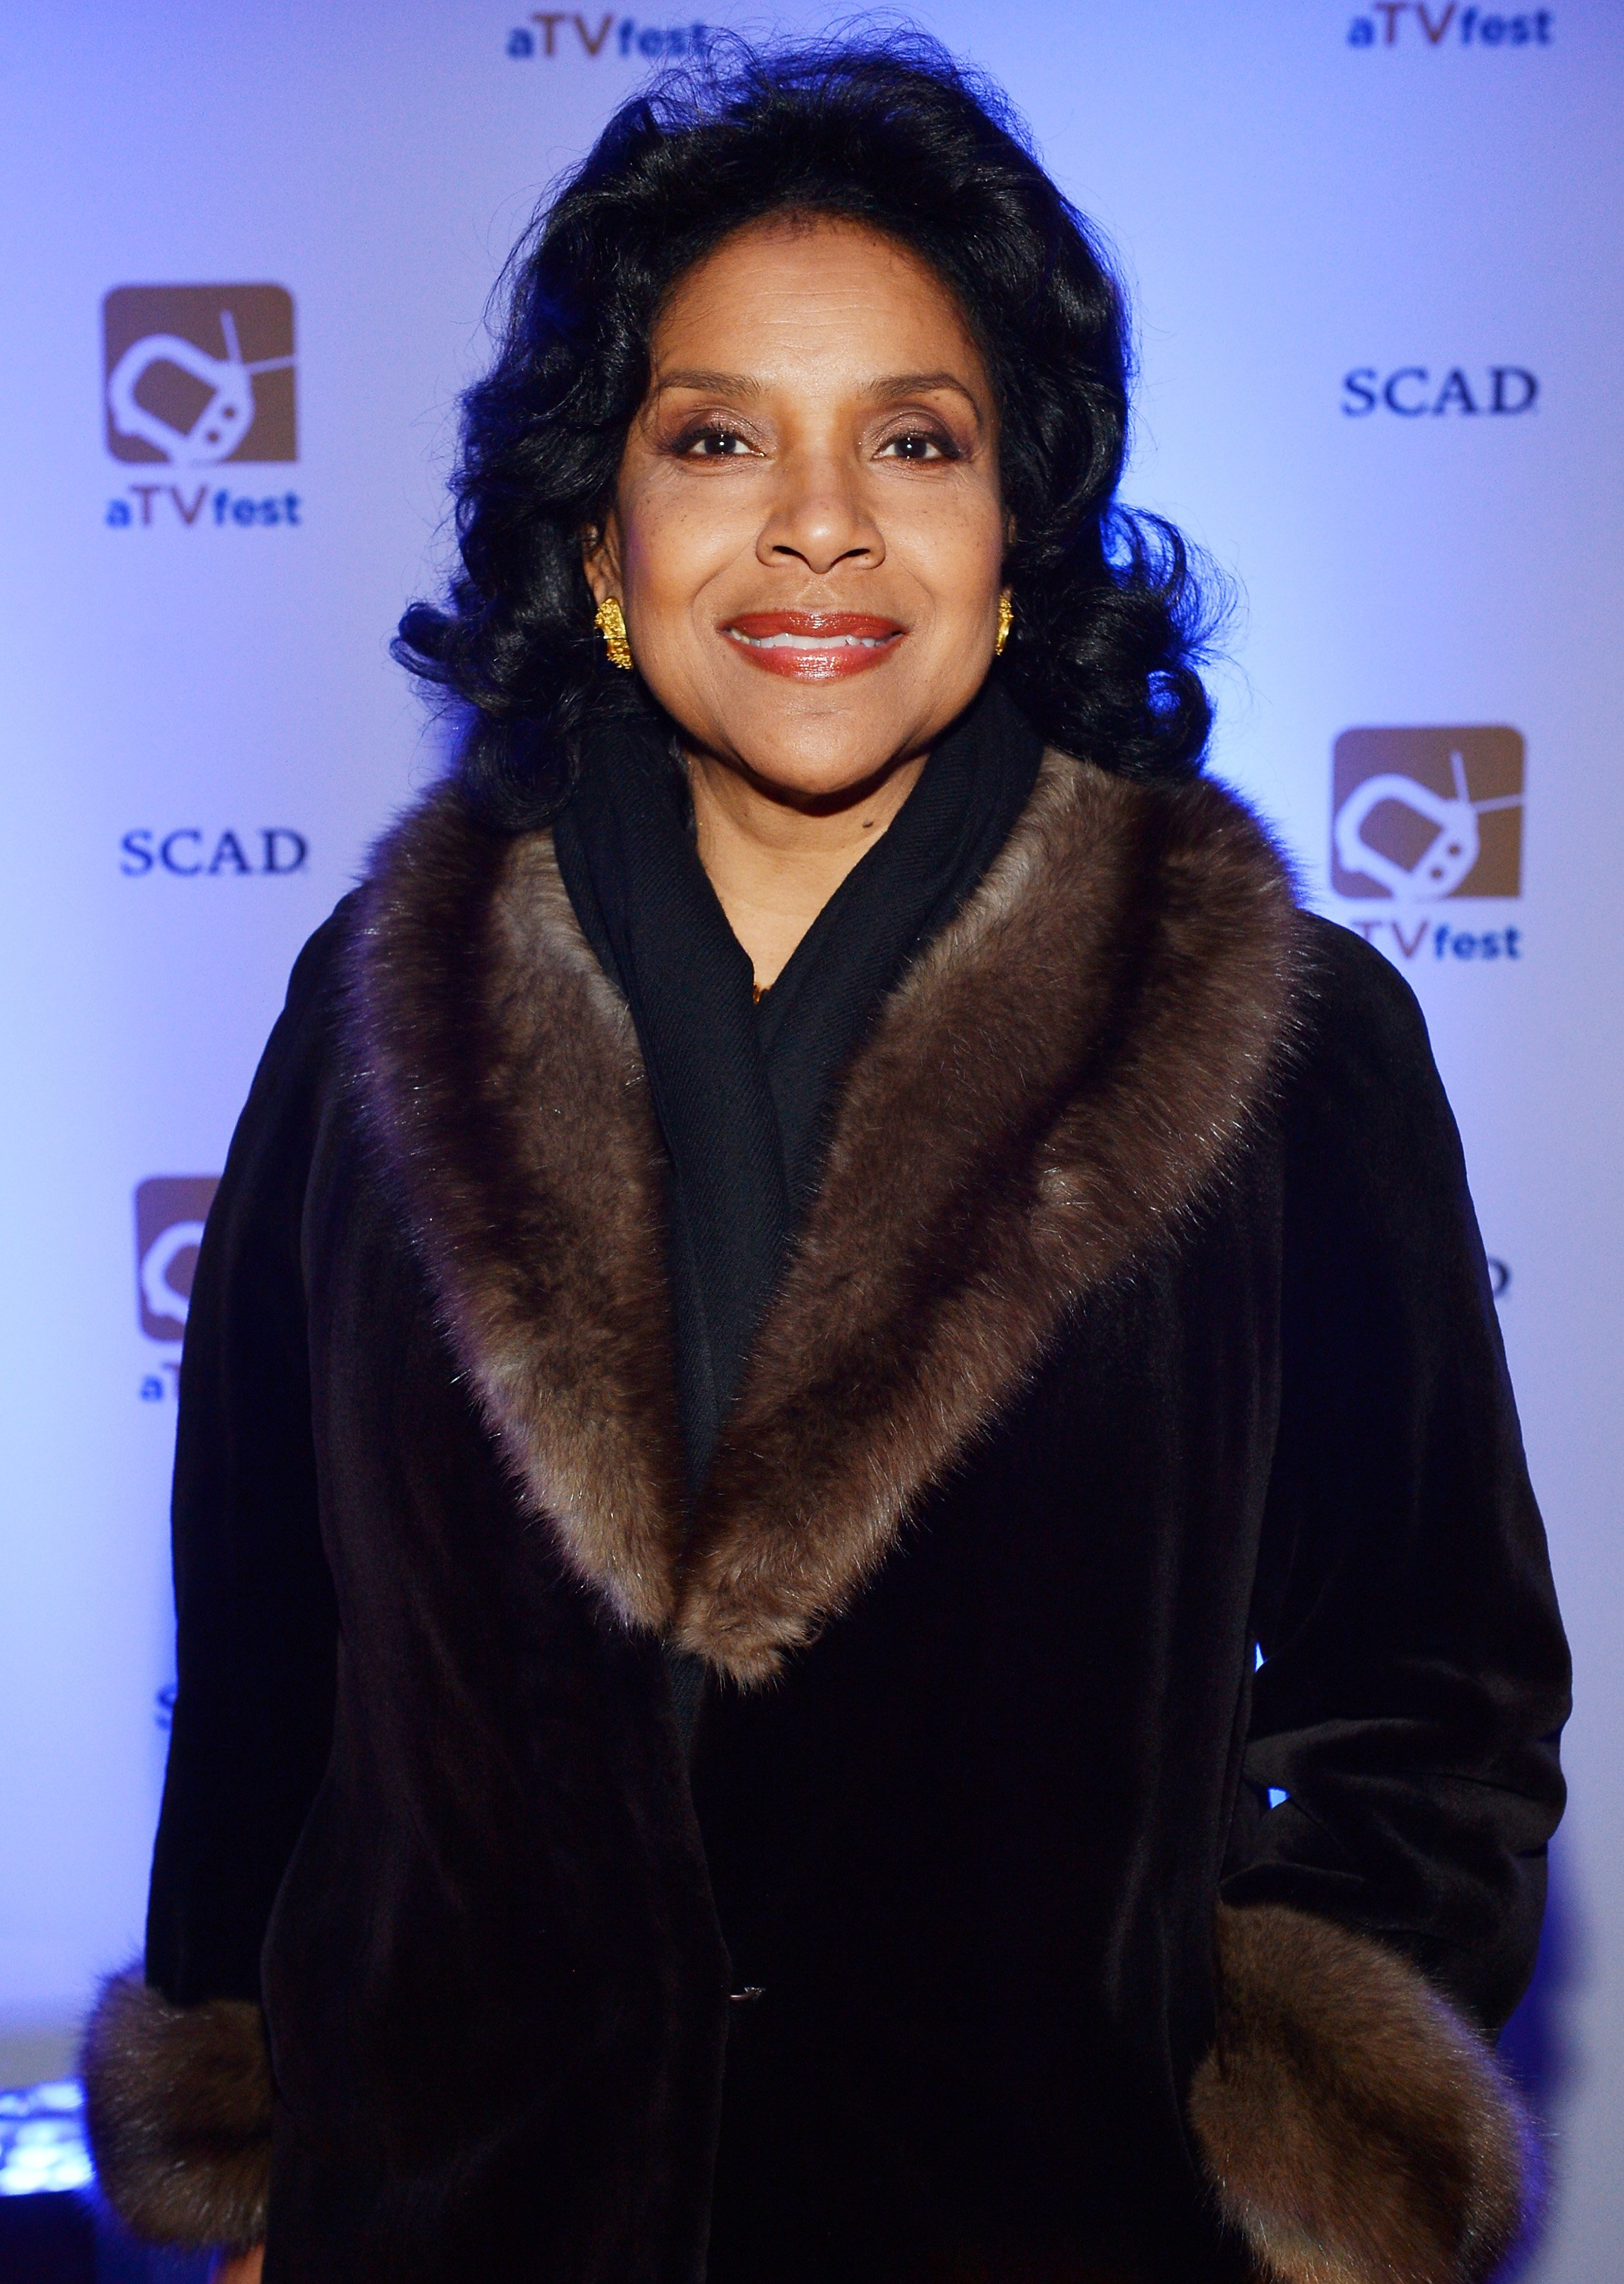 Actor Phylicia Rashad honored during the Inaugural aTVfest presented by (SCAD) Savannah College of Art and Design on February 16, 2013. | Photo: Getty Images